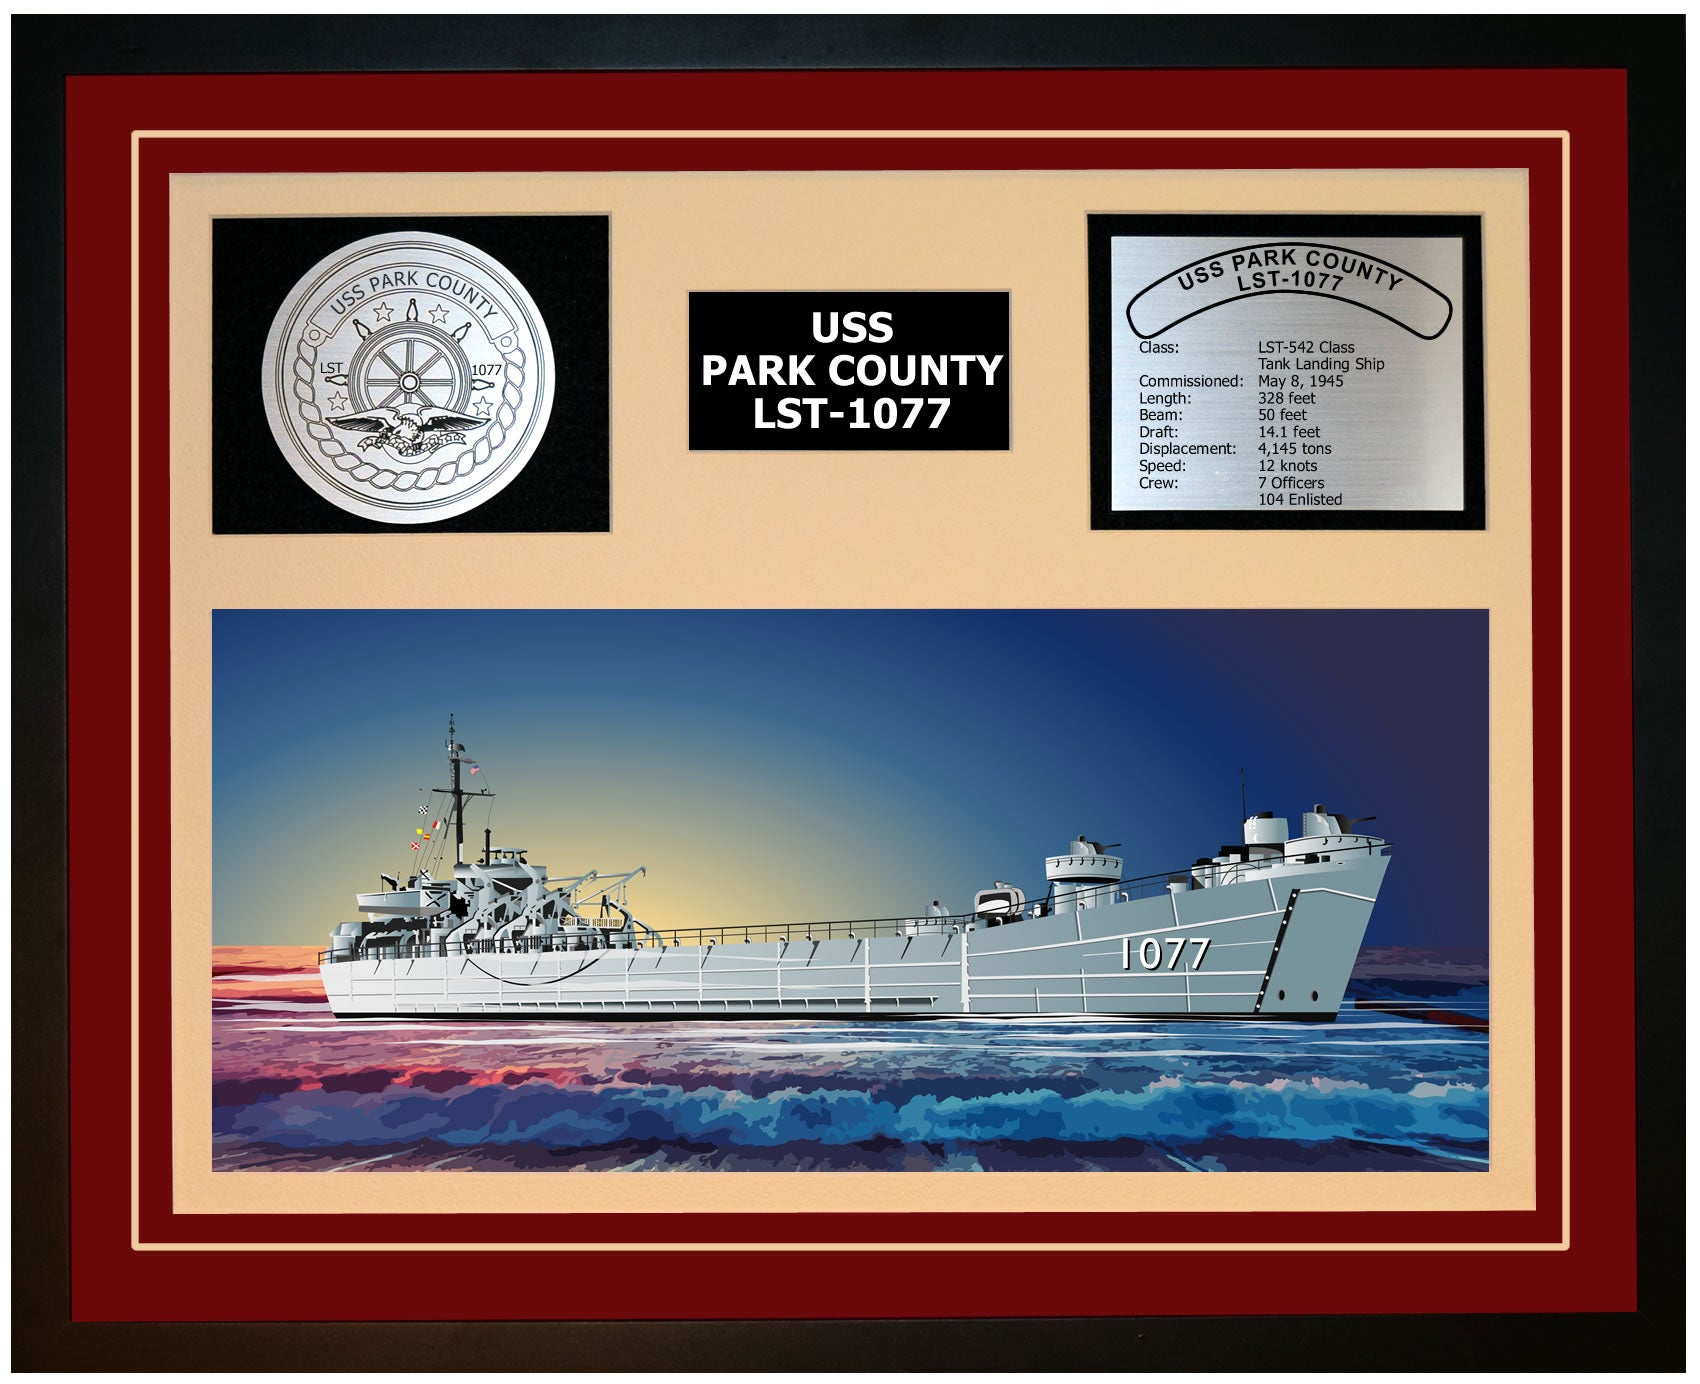 USS PARK COUNTY LST-1077 Framed Navy Ship Display Burgundy